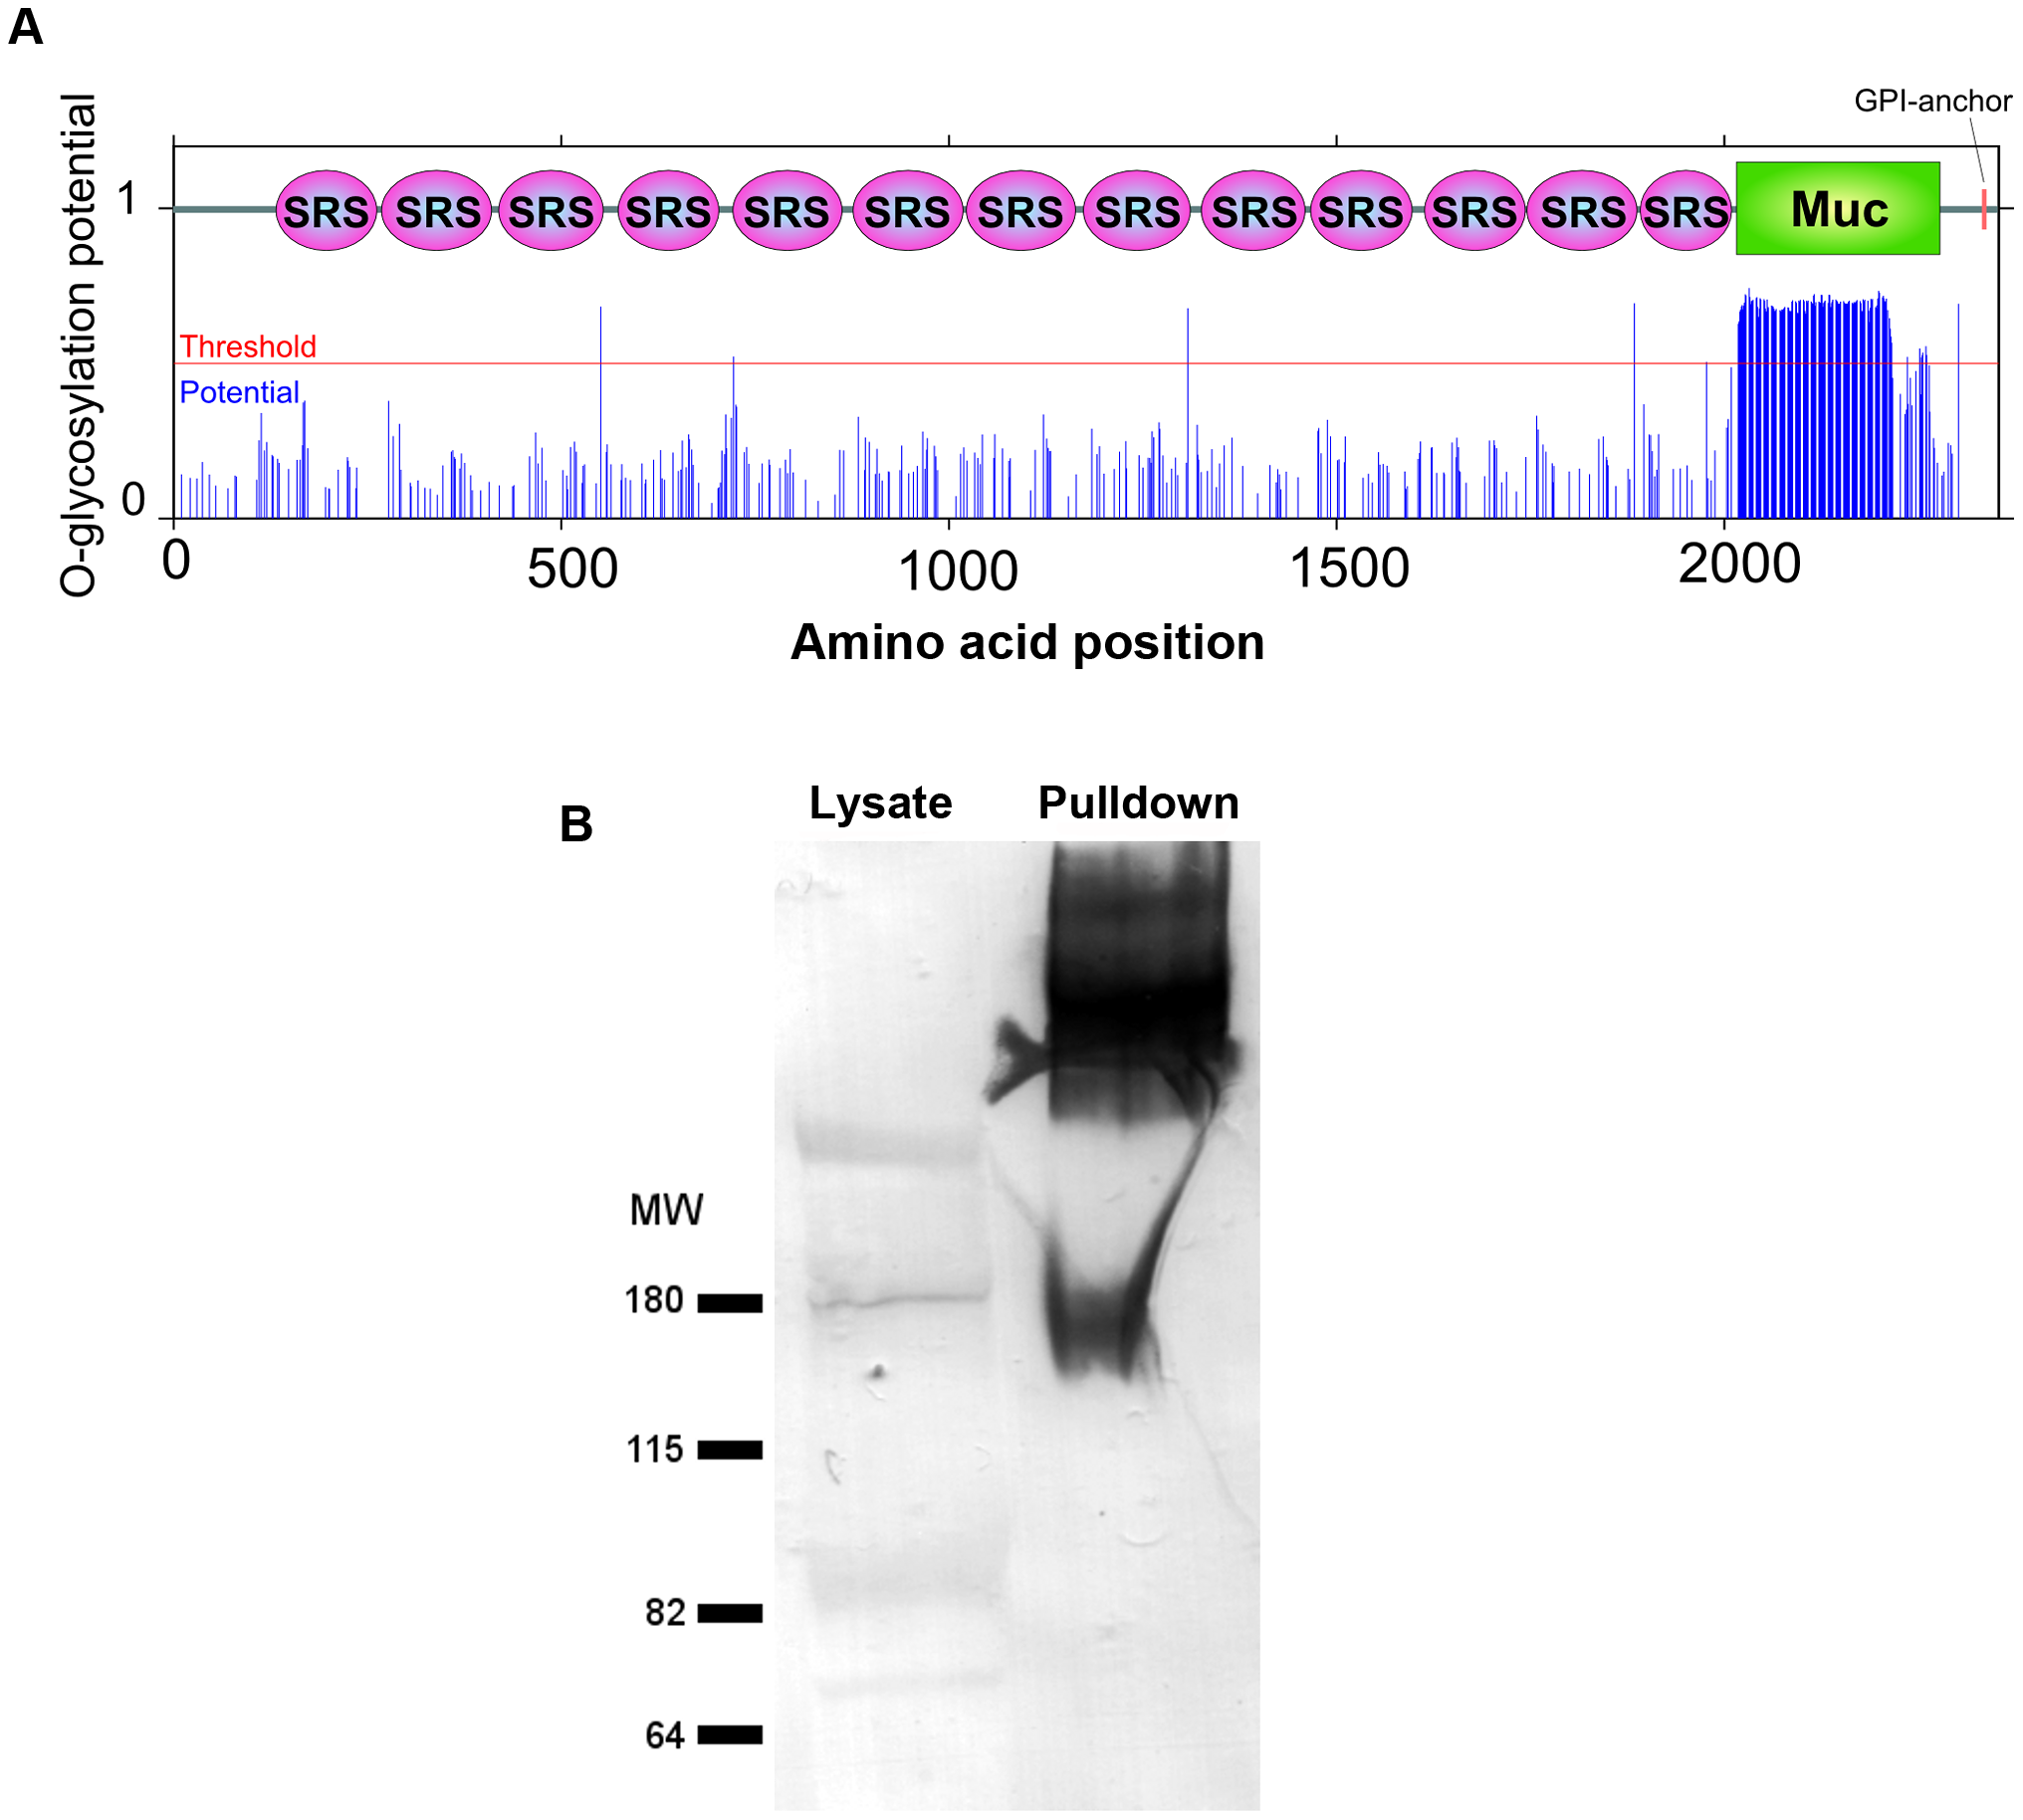 The mucin domain of CST1 is highly O-glycosylated.